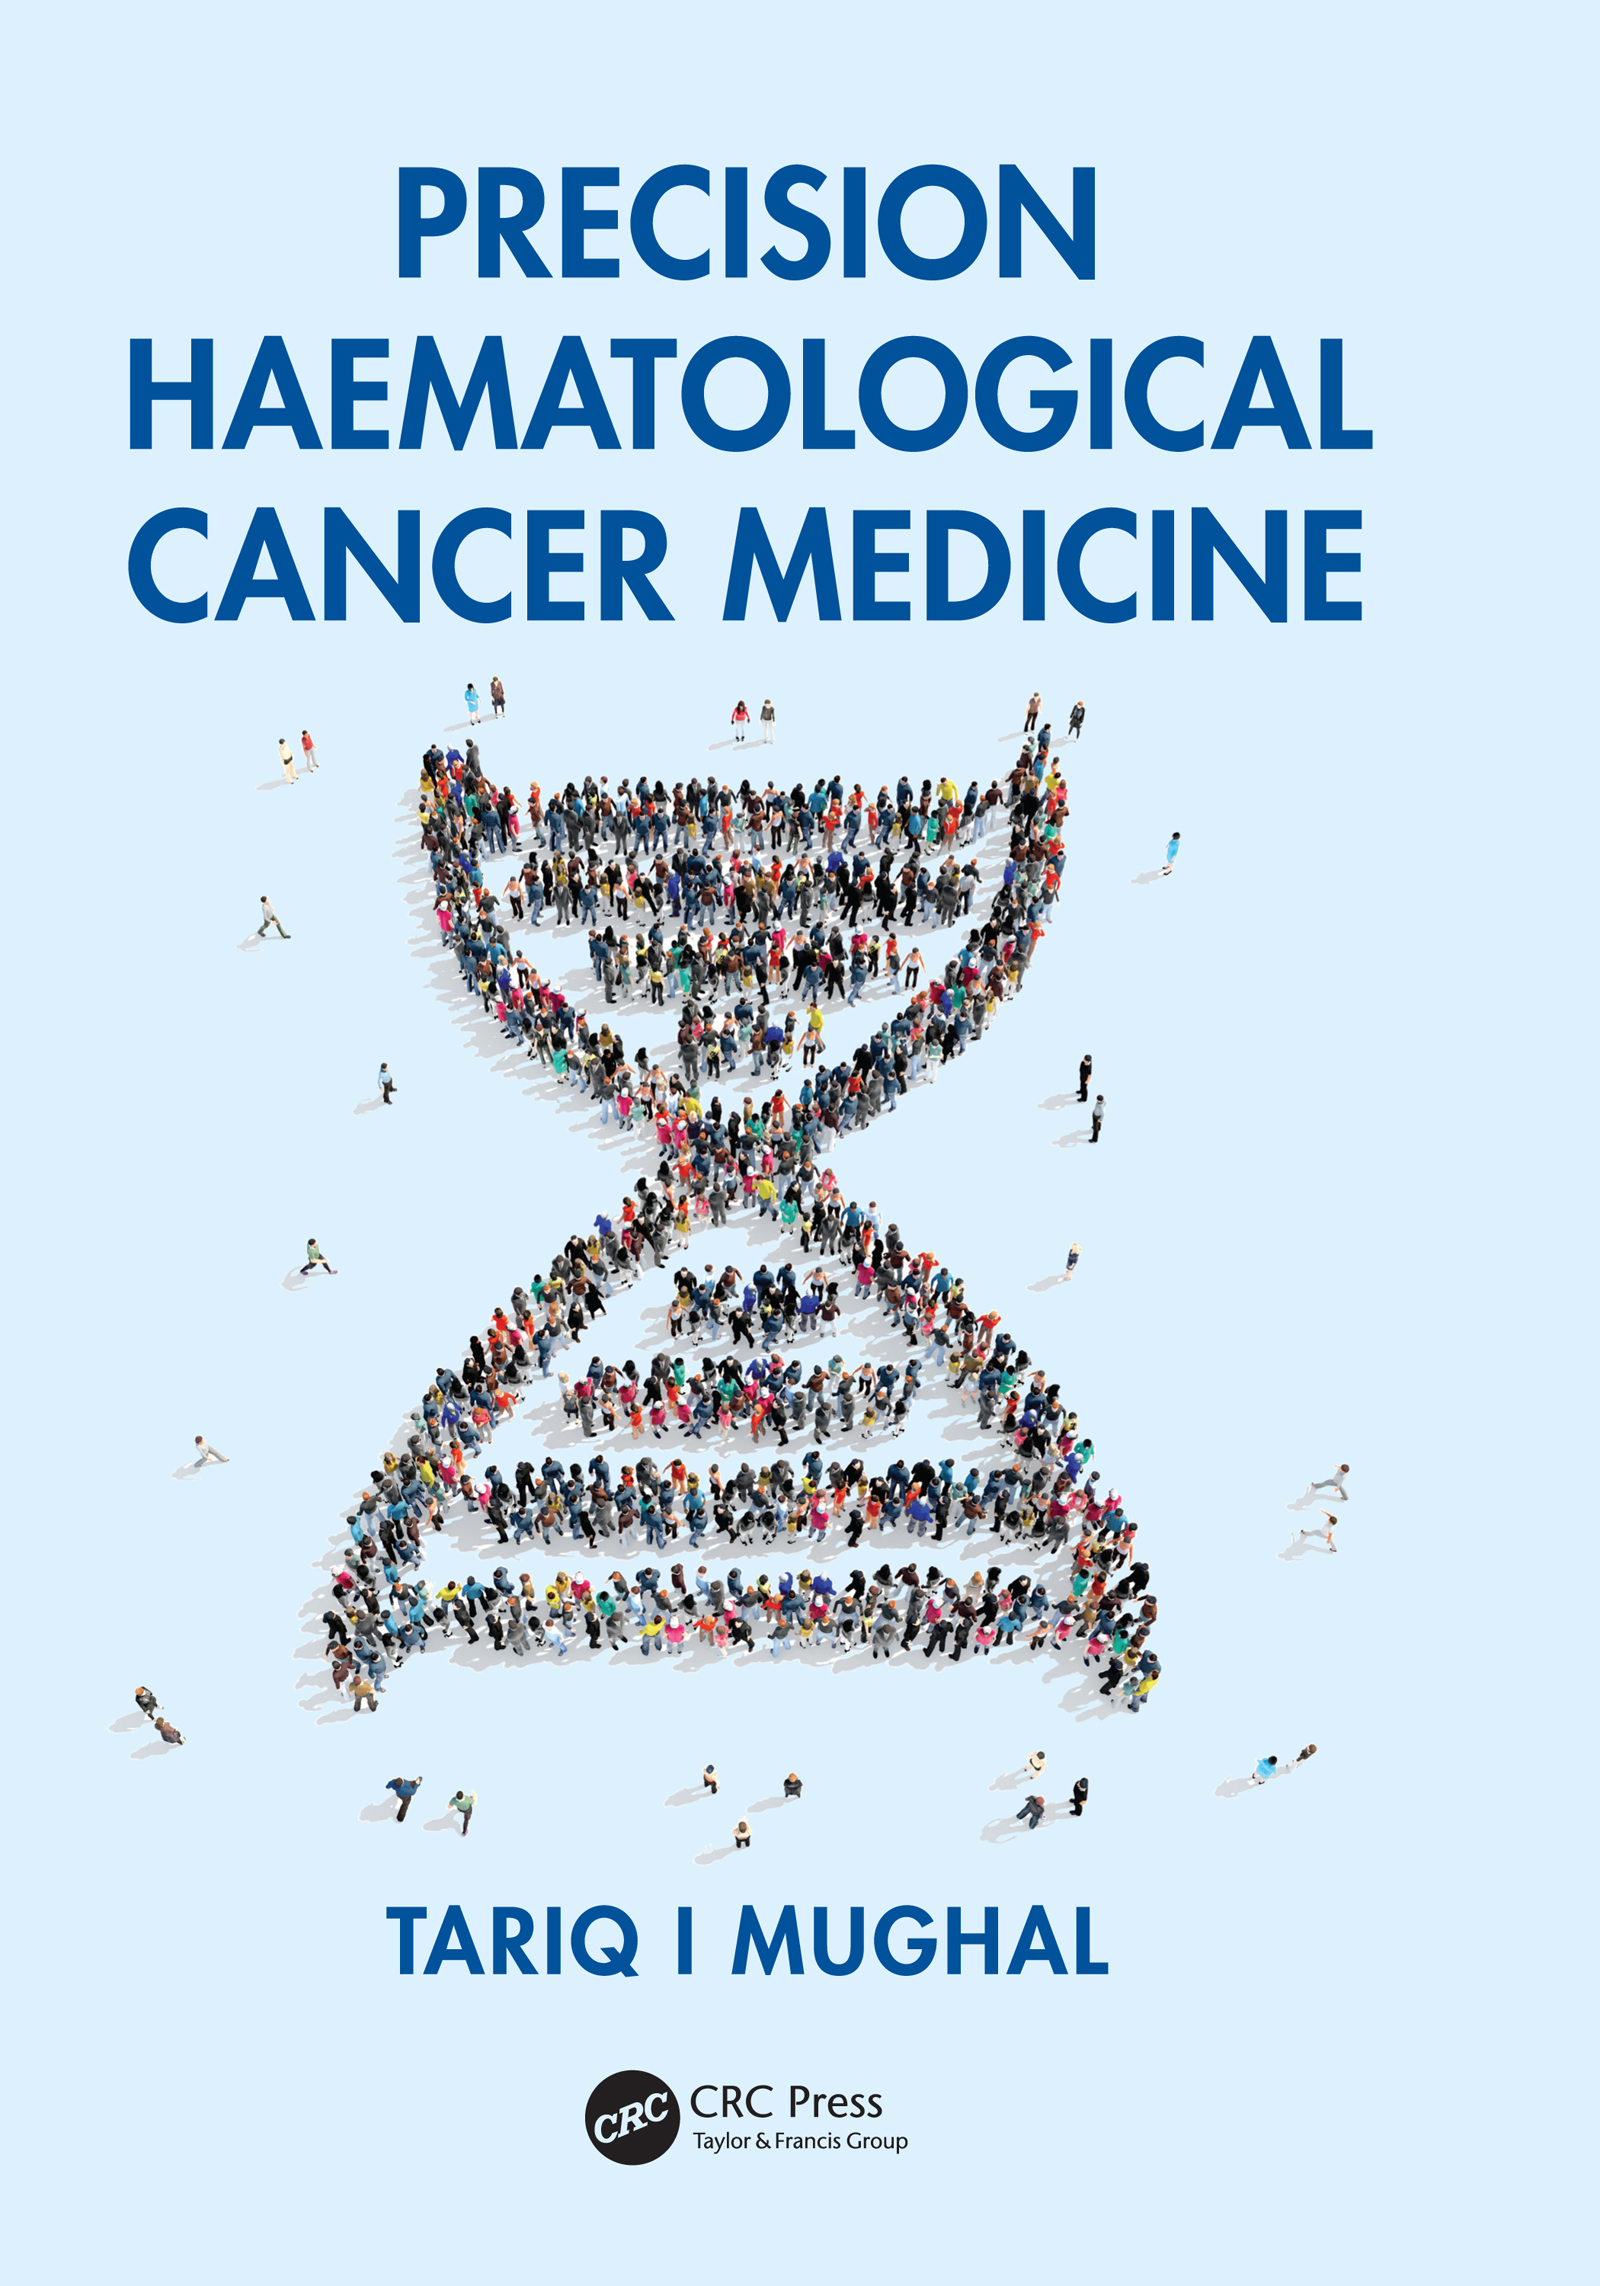 Precision Haematological Cancer Medicine book cover